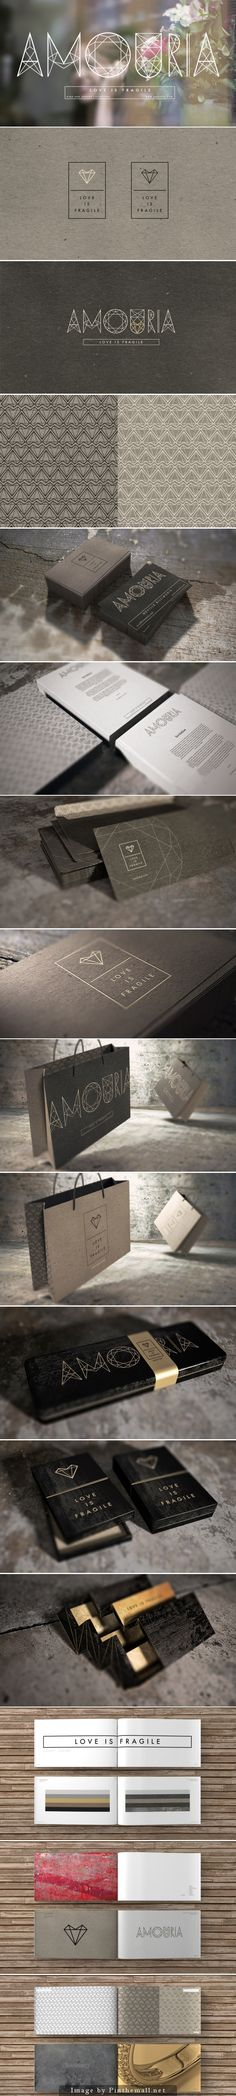 like the simple elegant text combined with the dark colour Brand Identity Design, Stationery Design, Corporate Design, Graphic Design Typography, Branding Design, Branding Ideas, Web Design, Love Design, Print Design